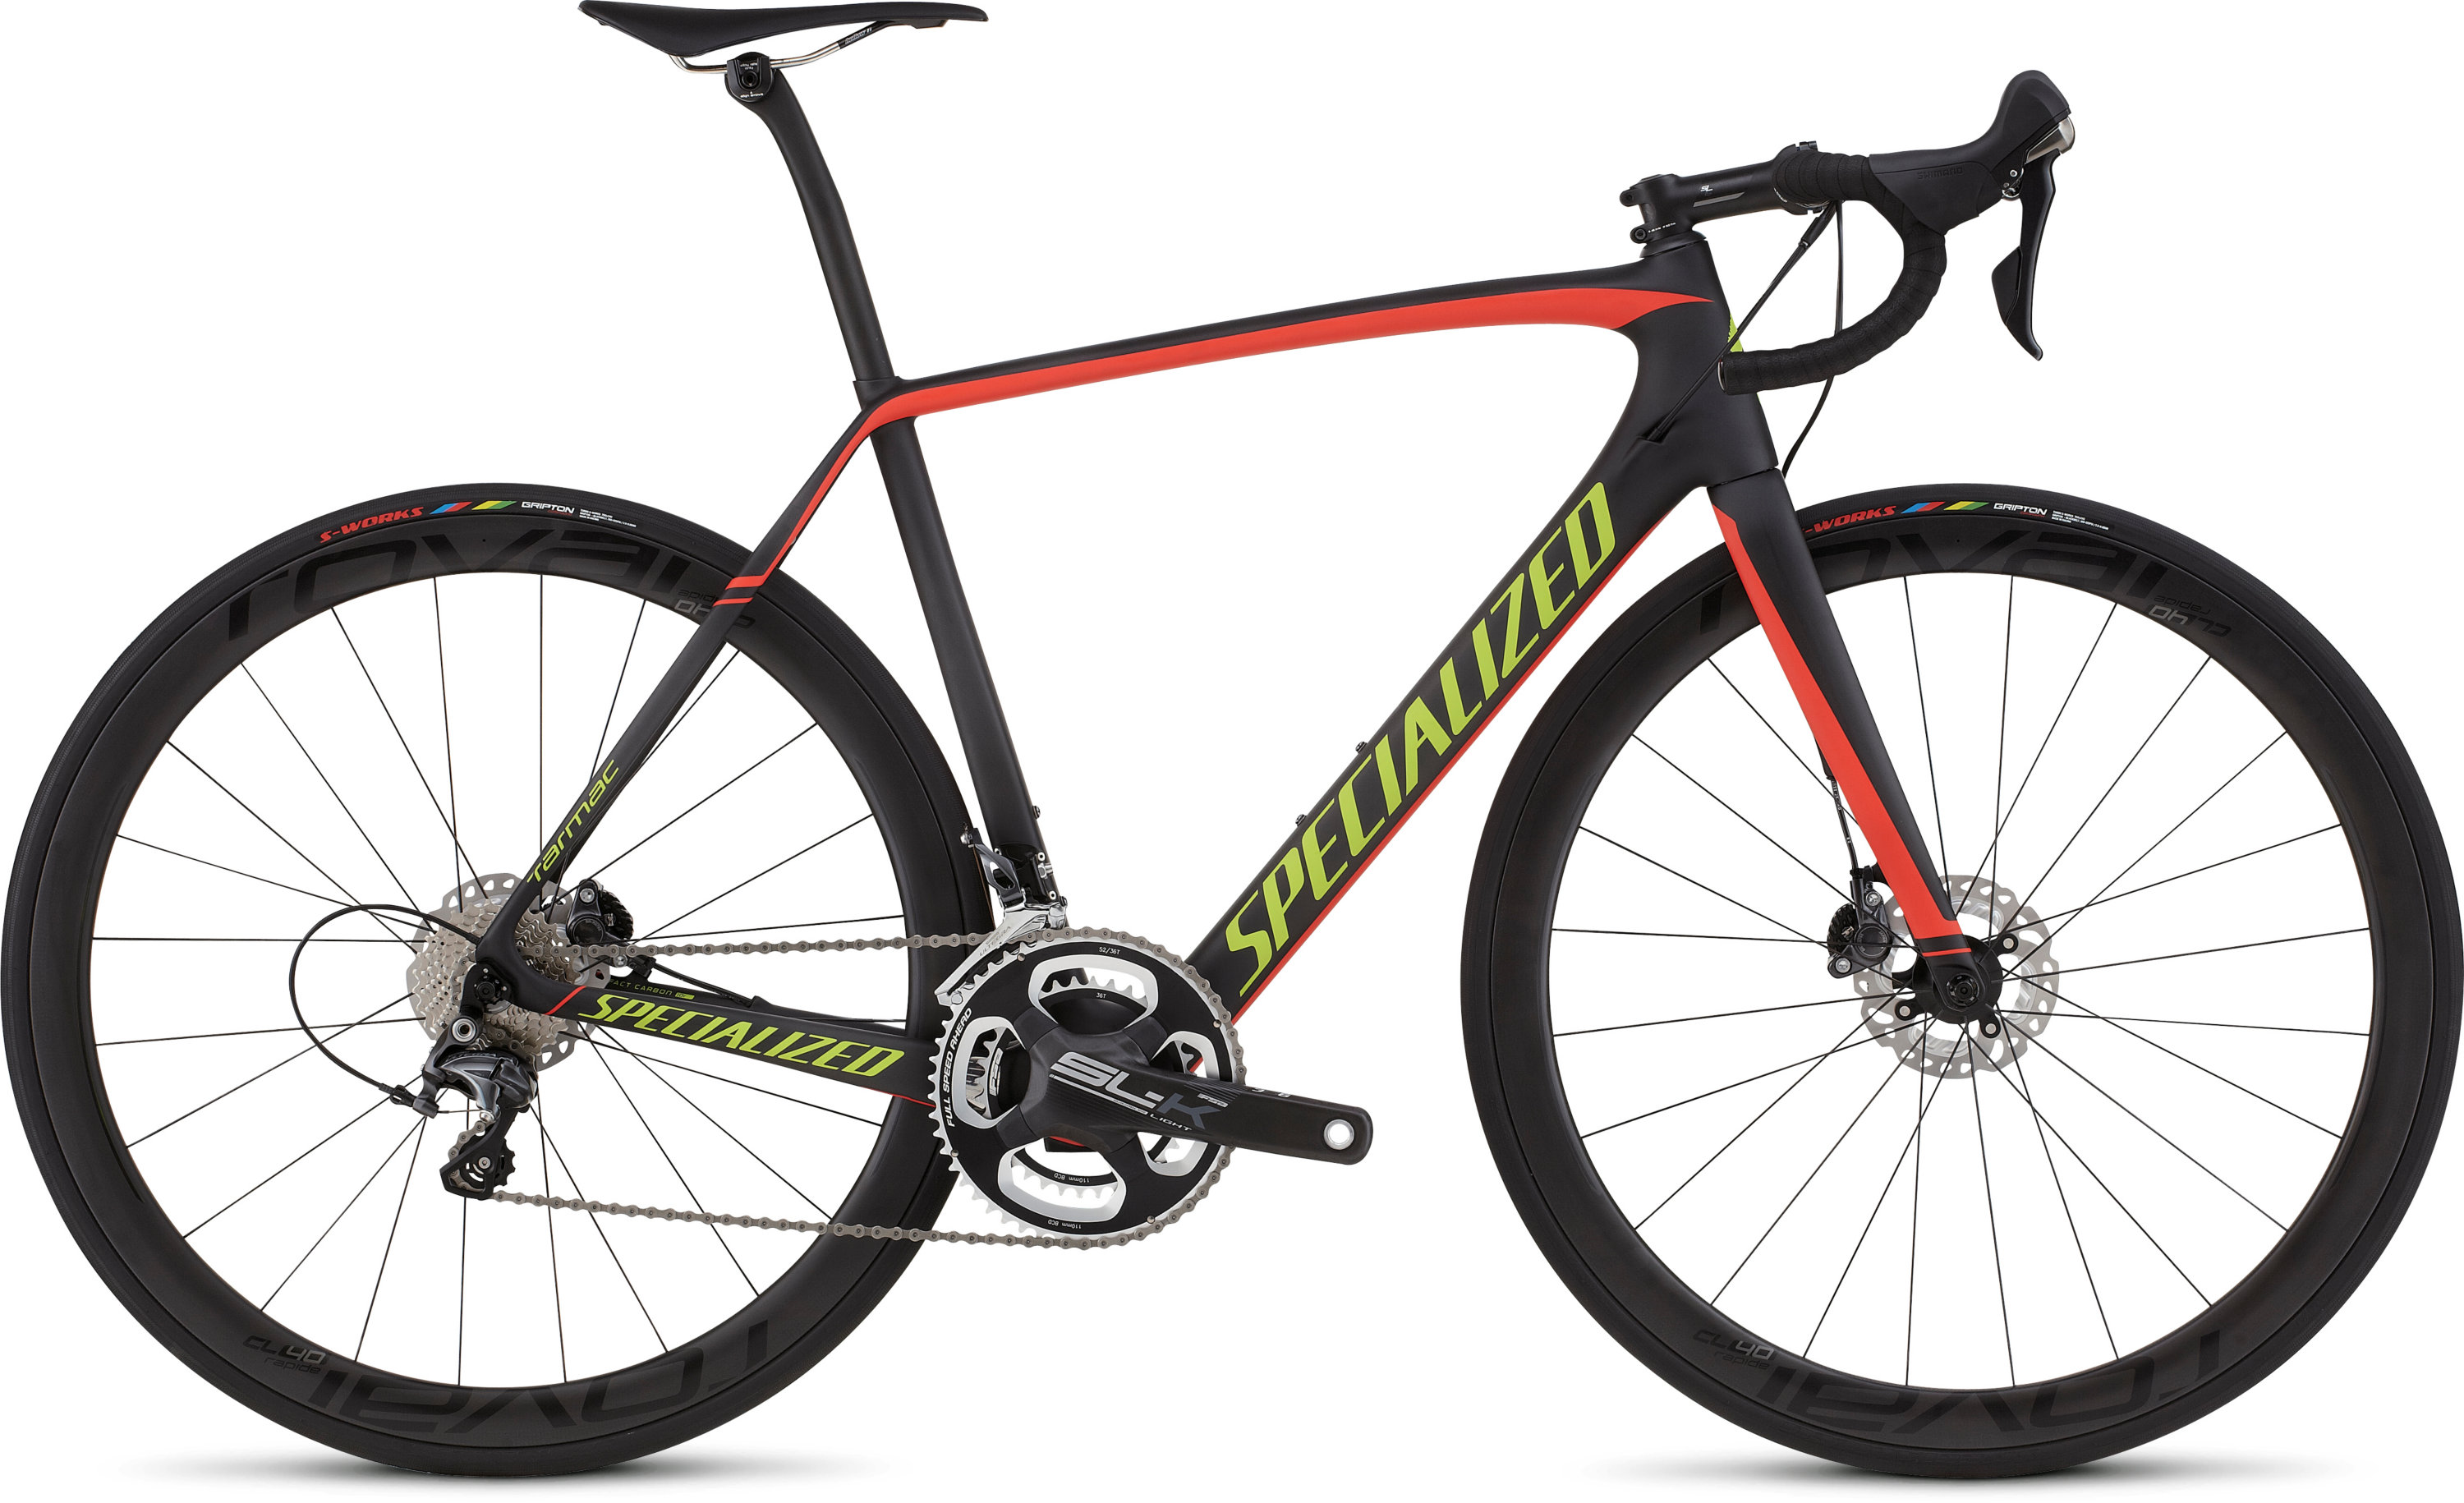 SPECIALIZED TARMAC EXPERT DISC RACE CARB/RED/HYP 49 - schneider-sports